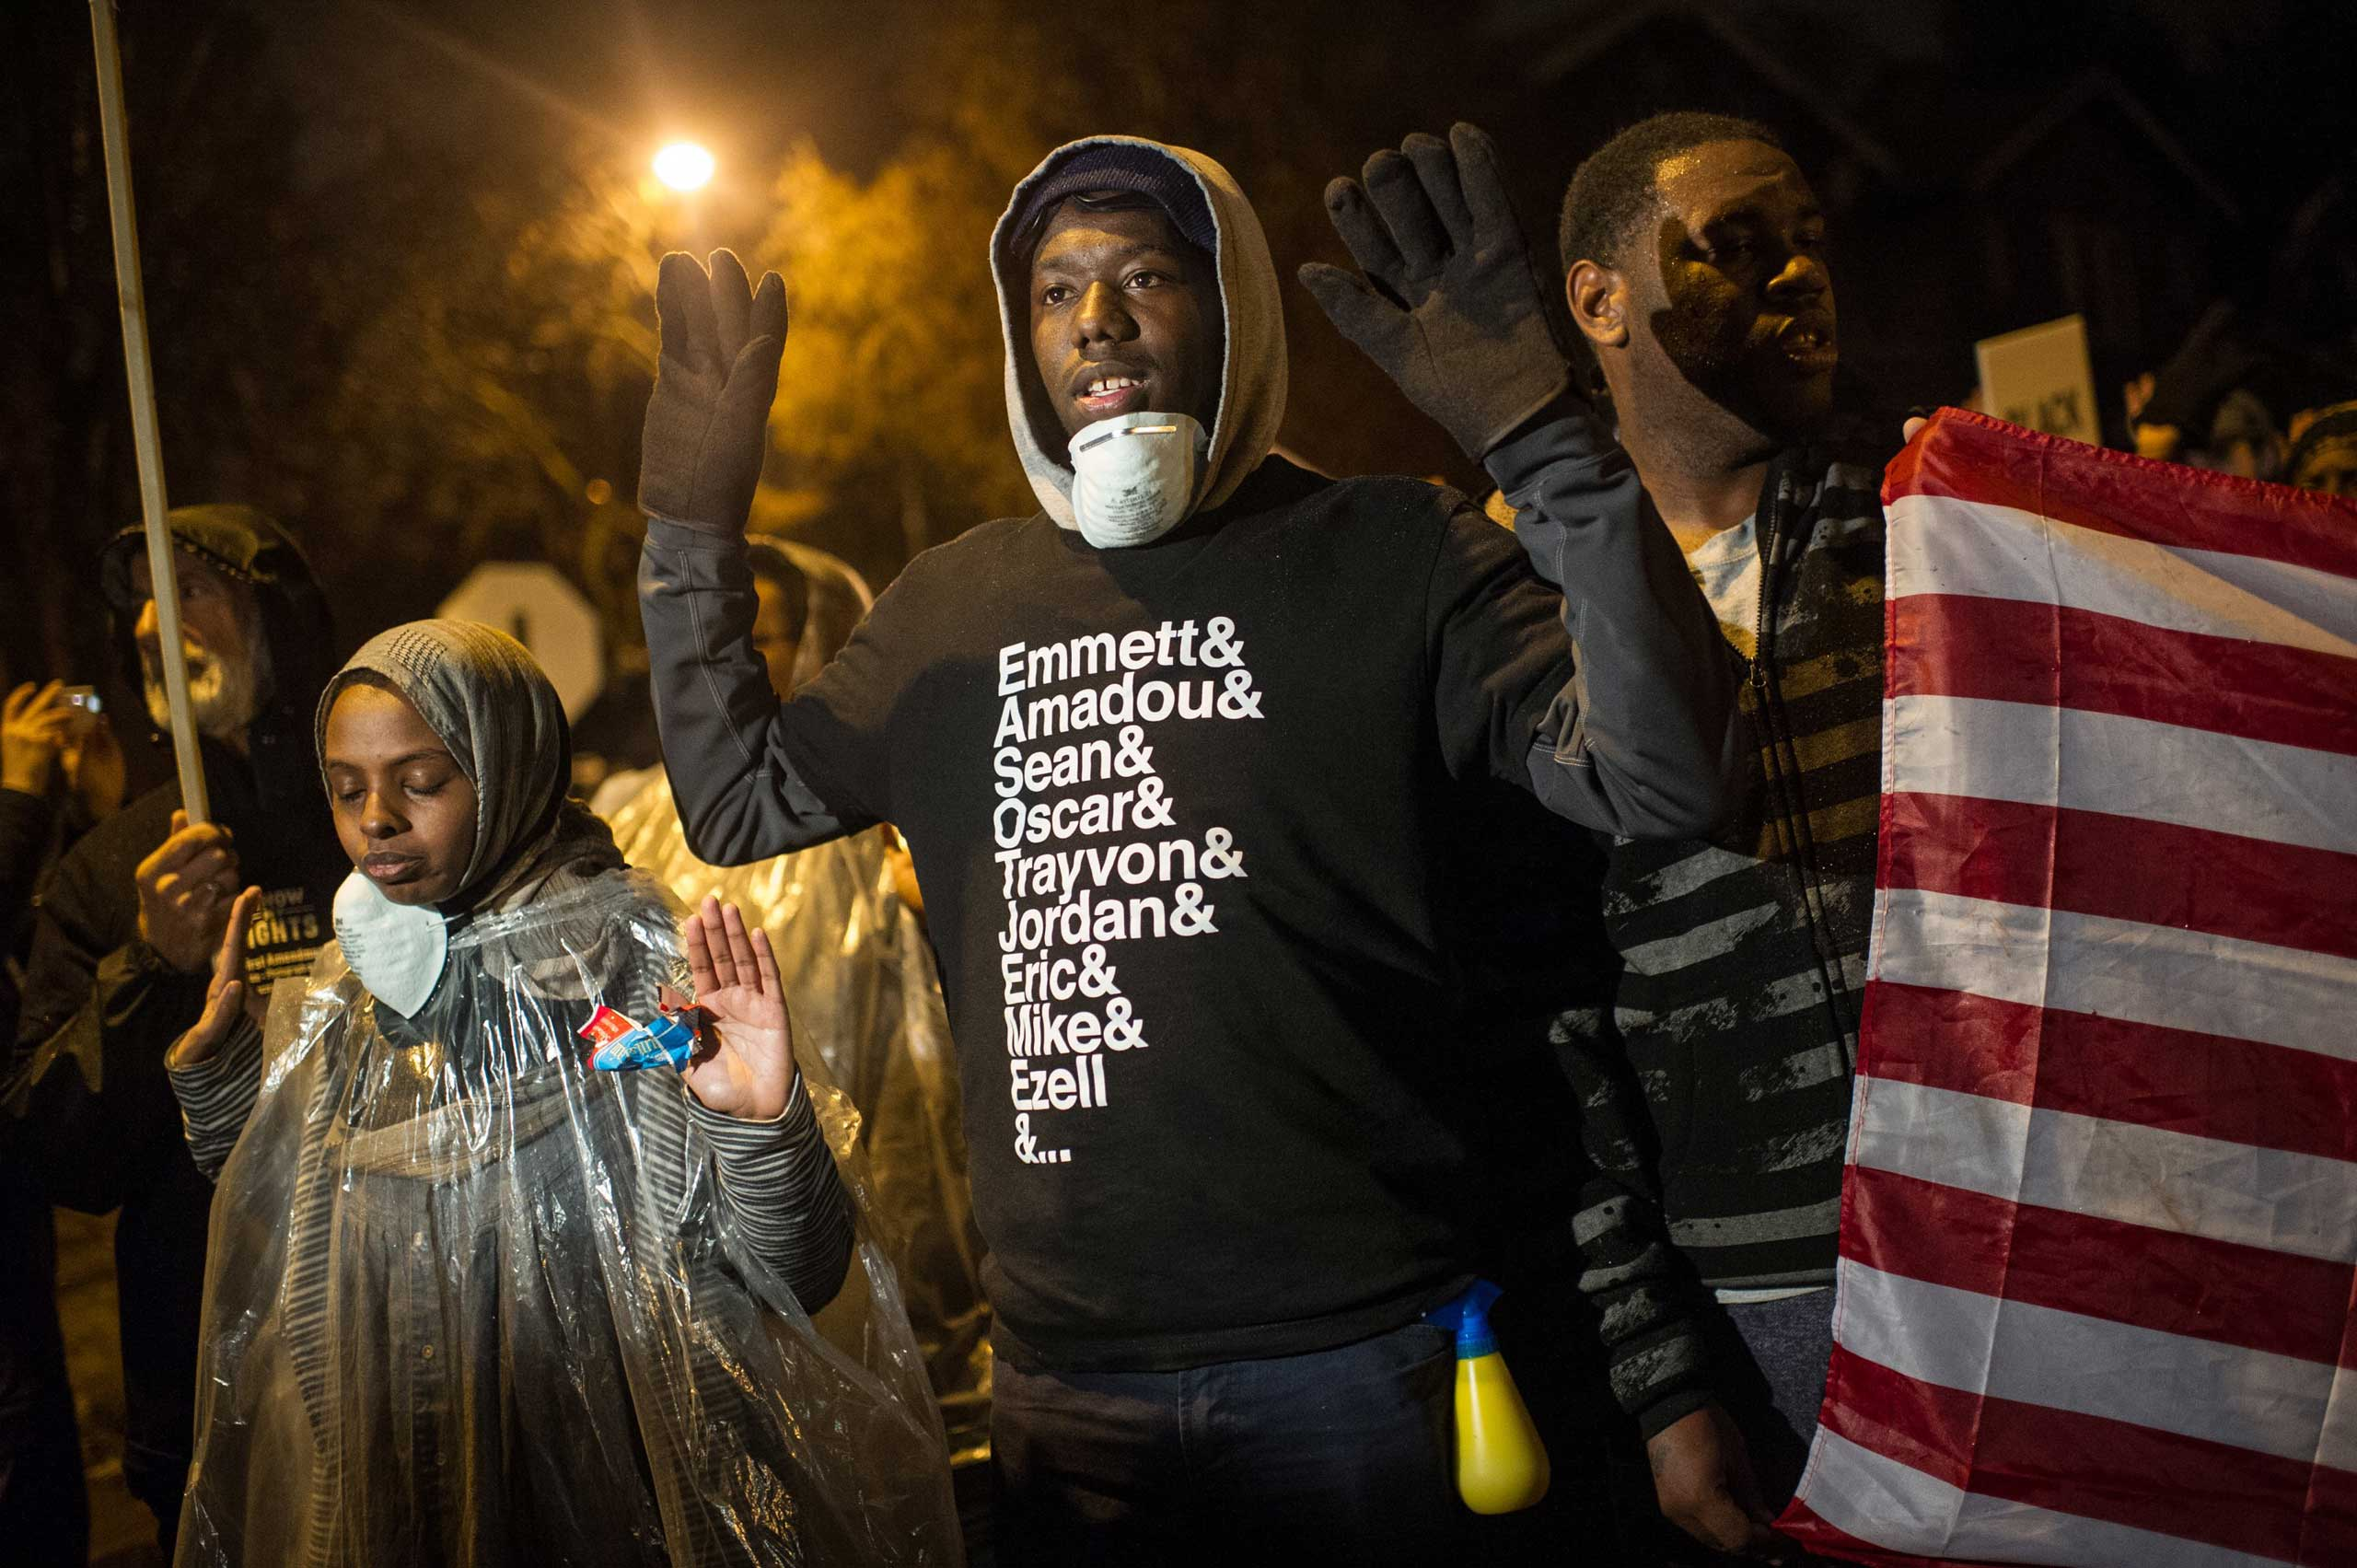 Protesters march through neighborhoods in St. Louis on Nov. 23, 2014